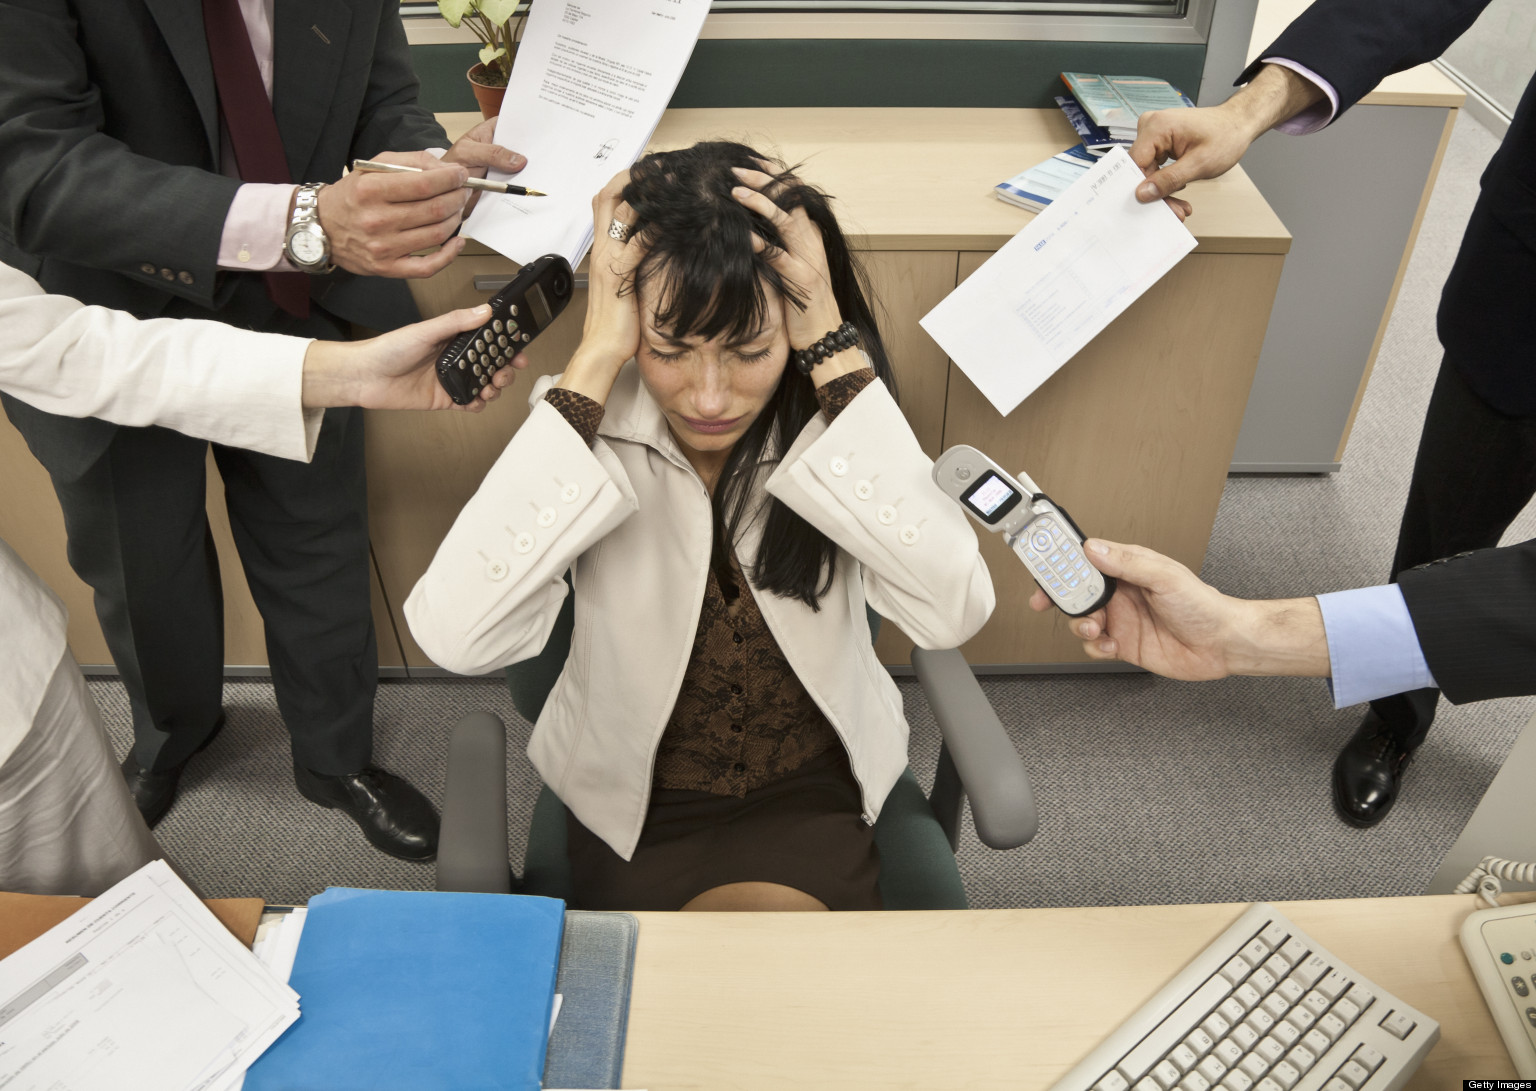 healthy lifestyle could lessen effect of job stress on heart the healthy lifestyle could lessen effect of job stress on heart the huffington post